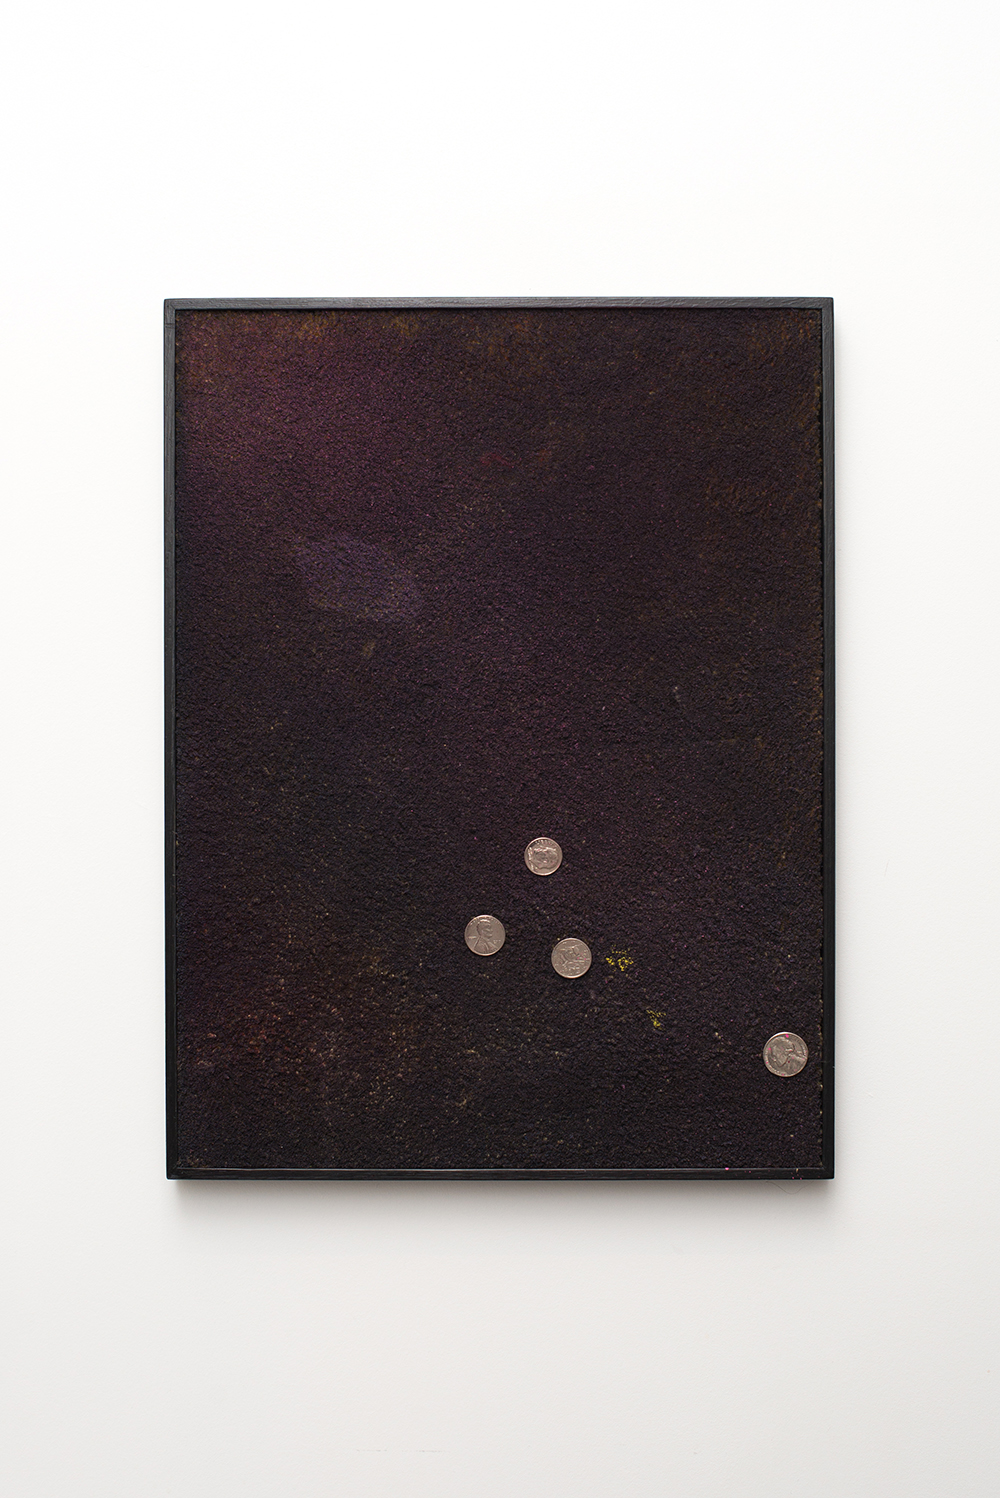 ISABELLE CORNARO - Golden Memories (Miscellaneous Nickel Plated Objects)